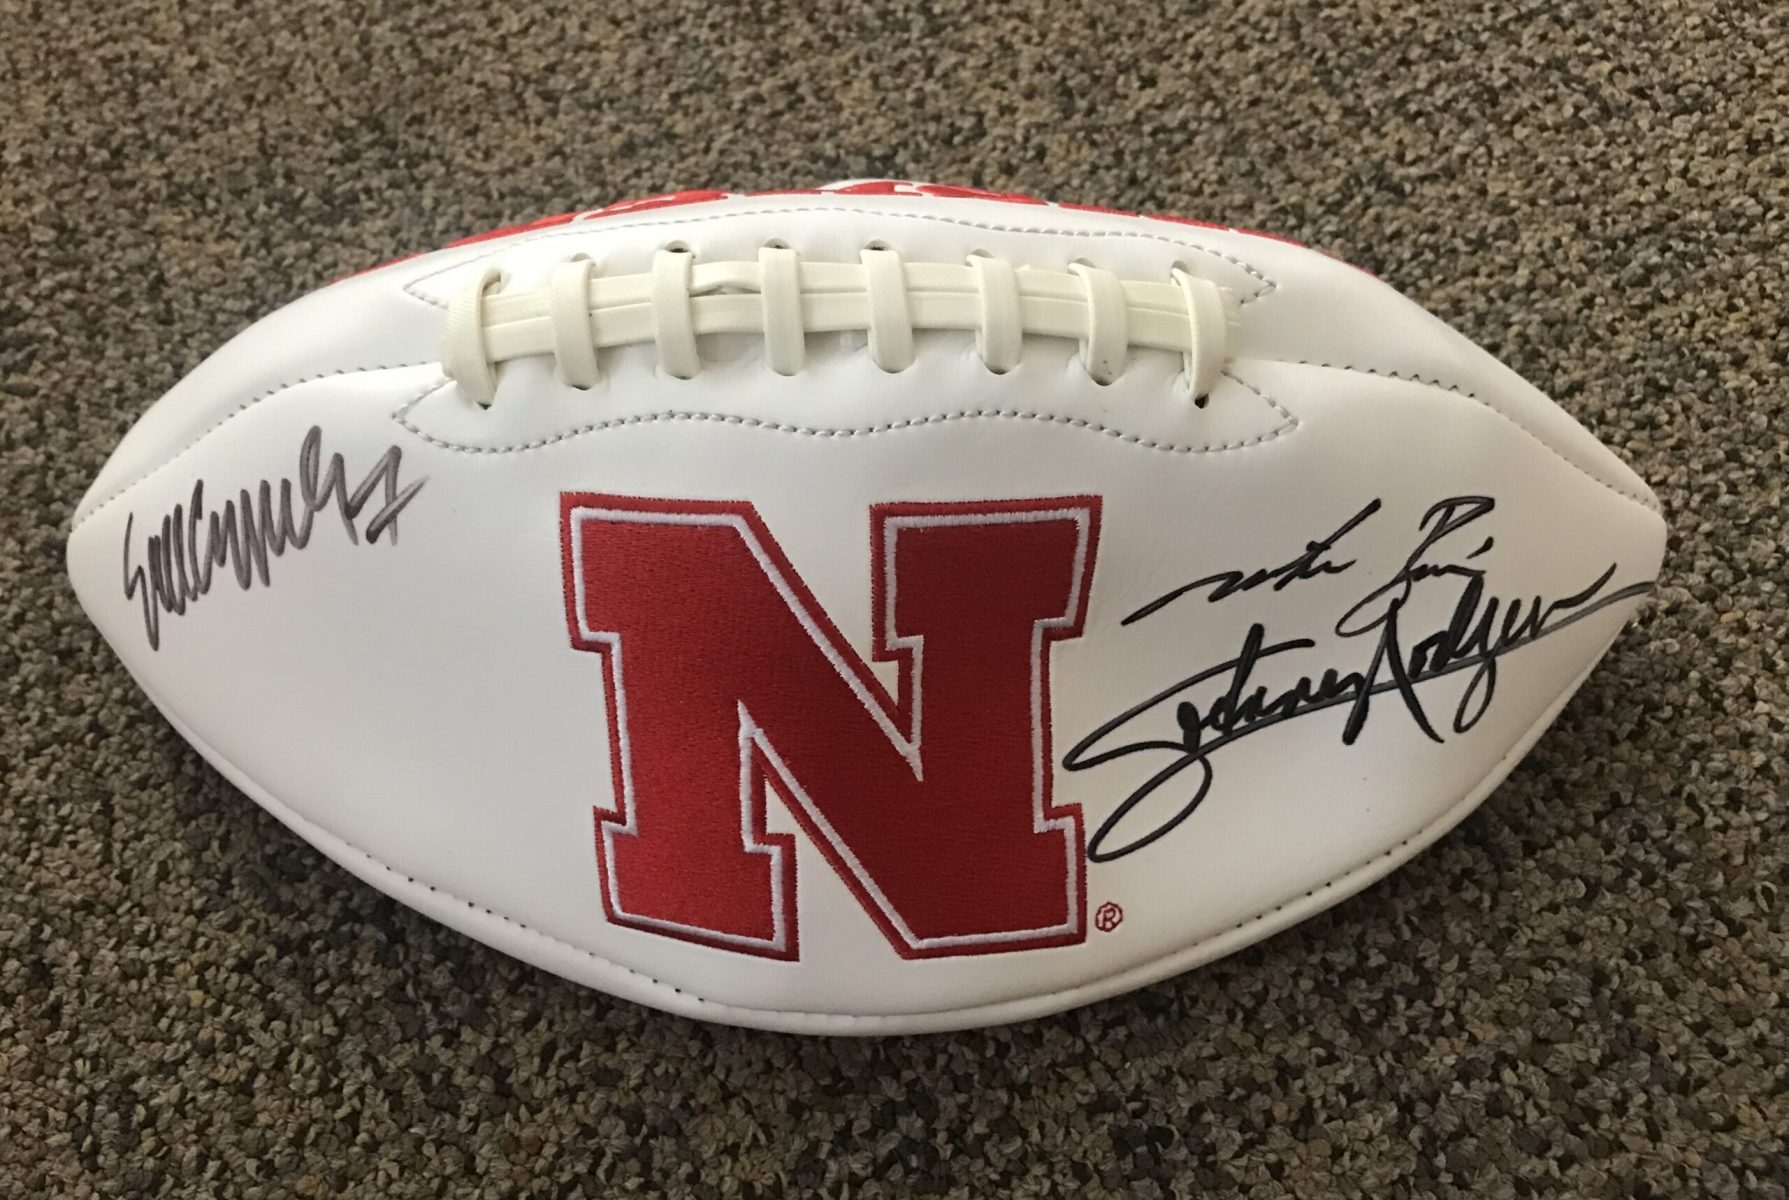 Neb-triple-signed-football-scaled